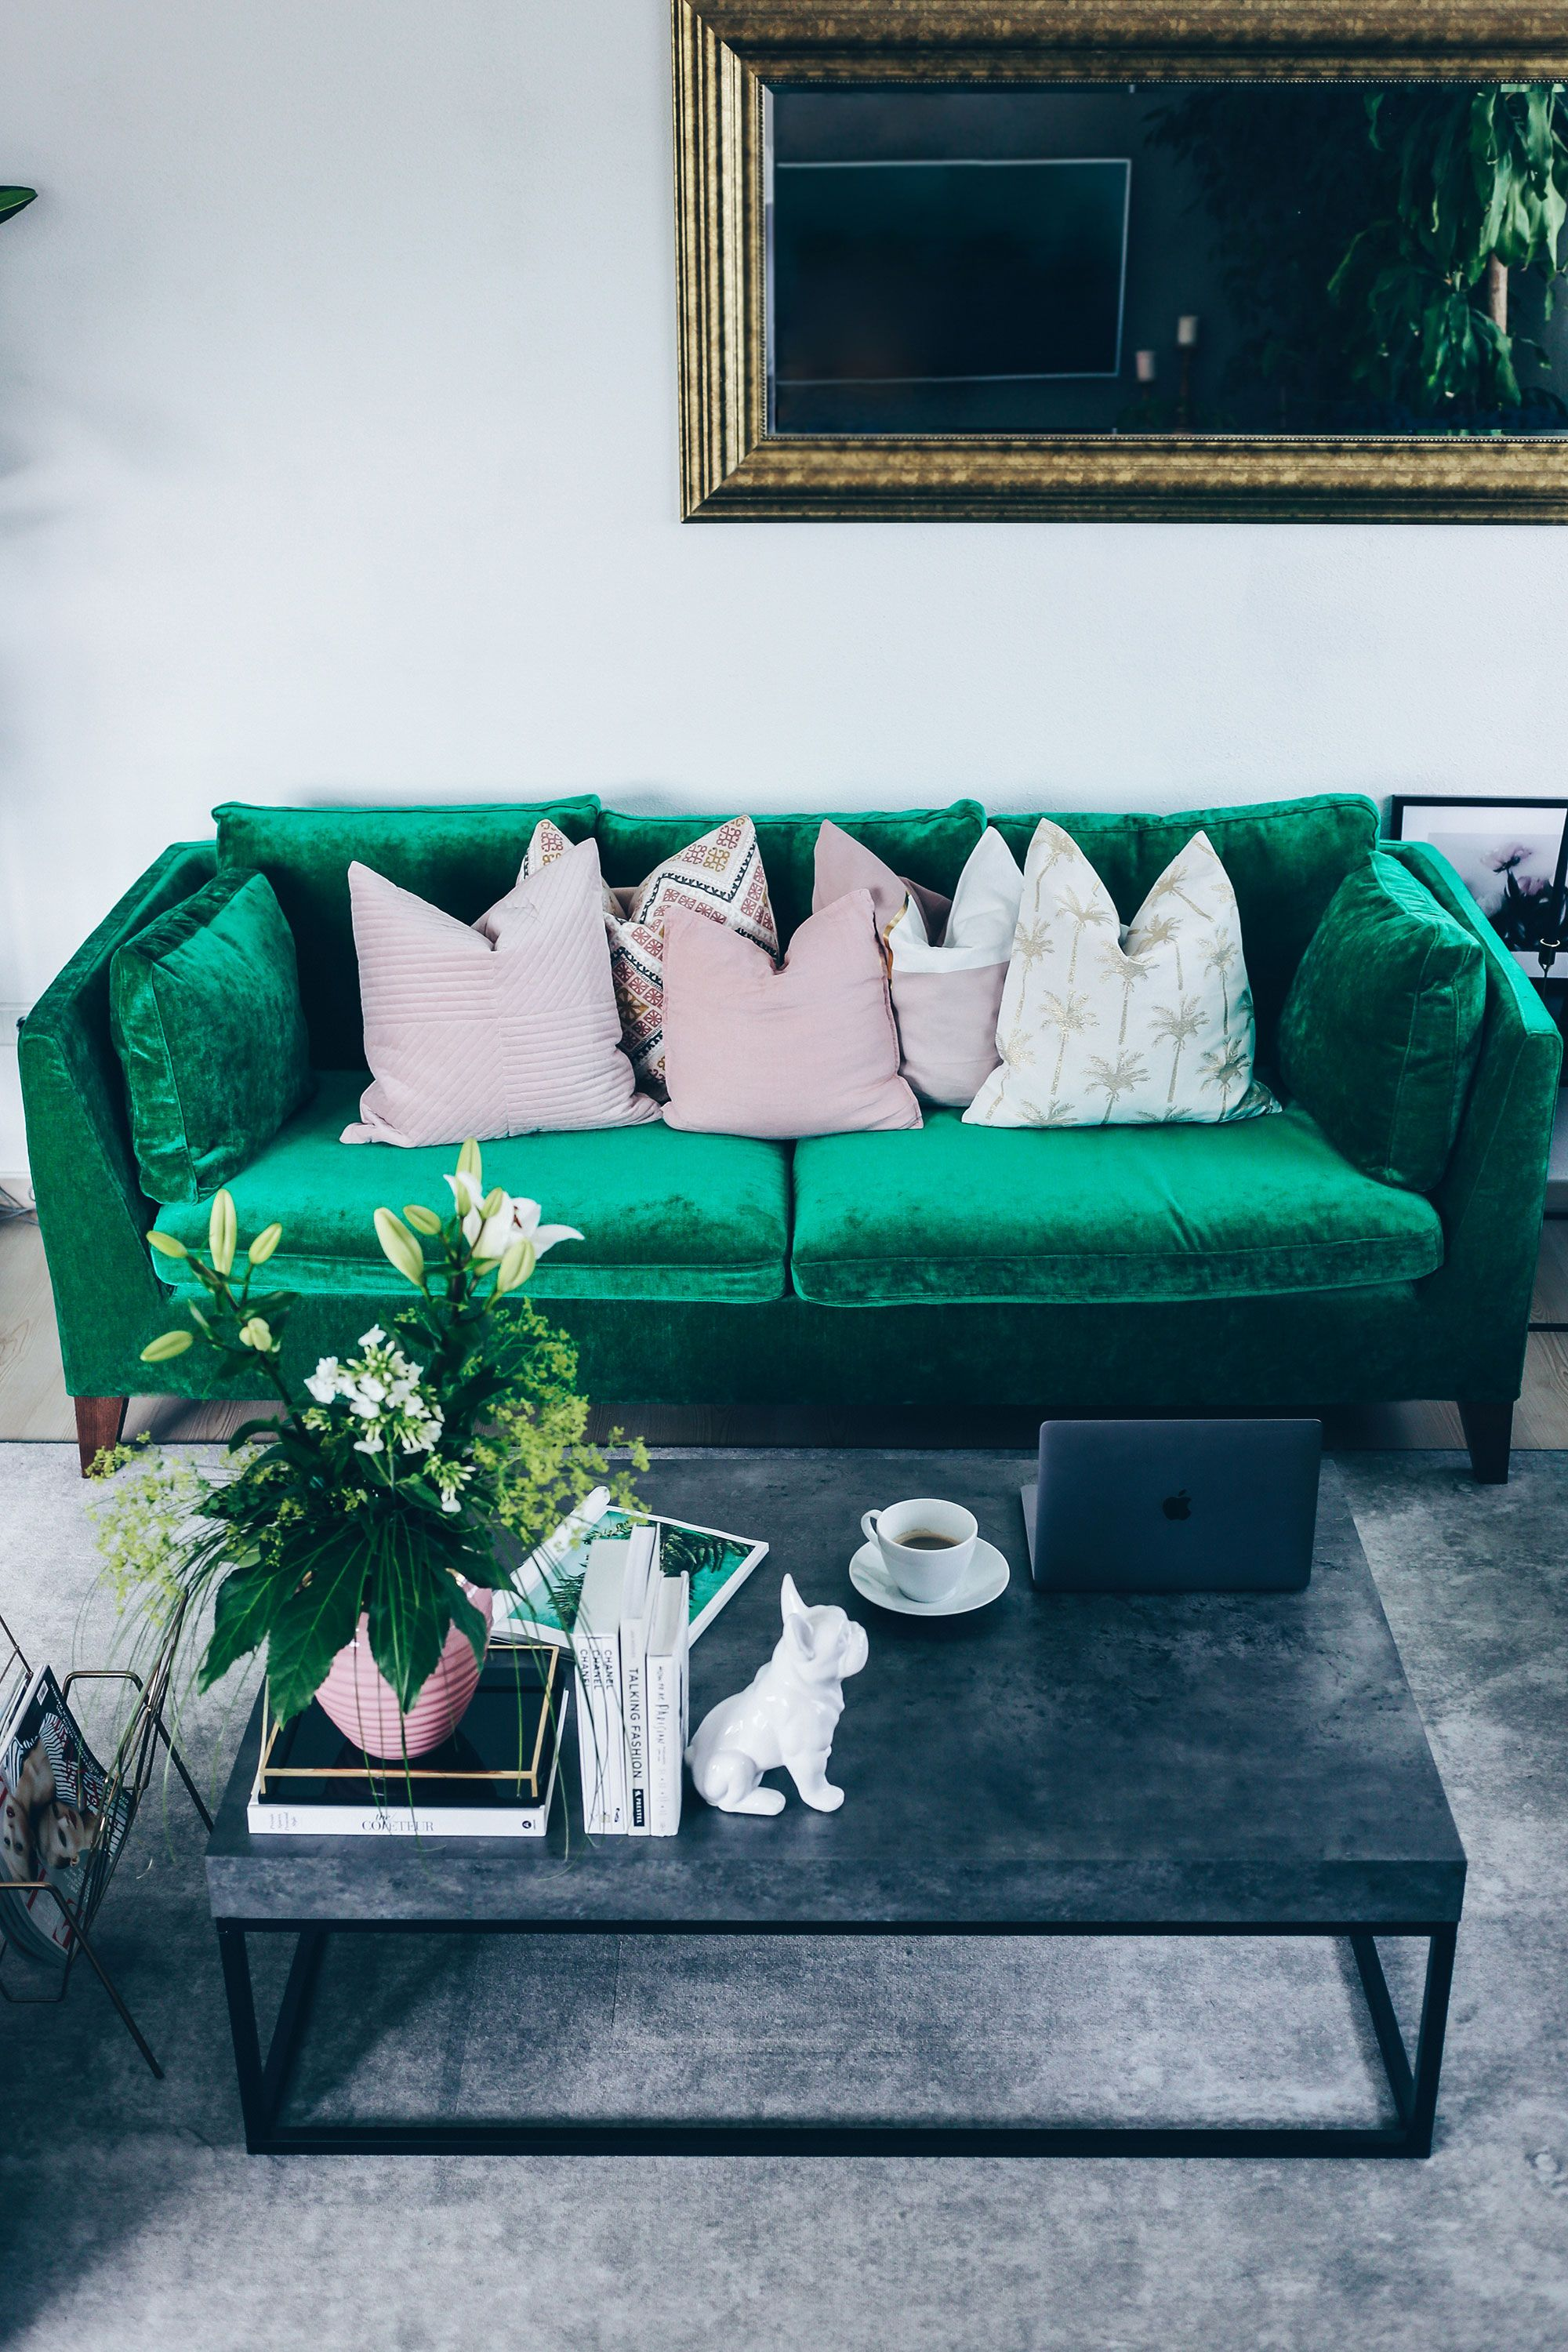 Blogger Who Is Mocca Updated Her IKEA Stockholm Sofa With A Bemz Cover In  Emerald Zaragoza